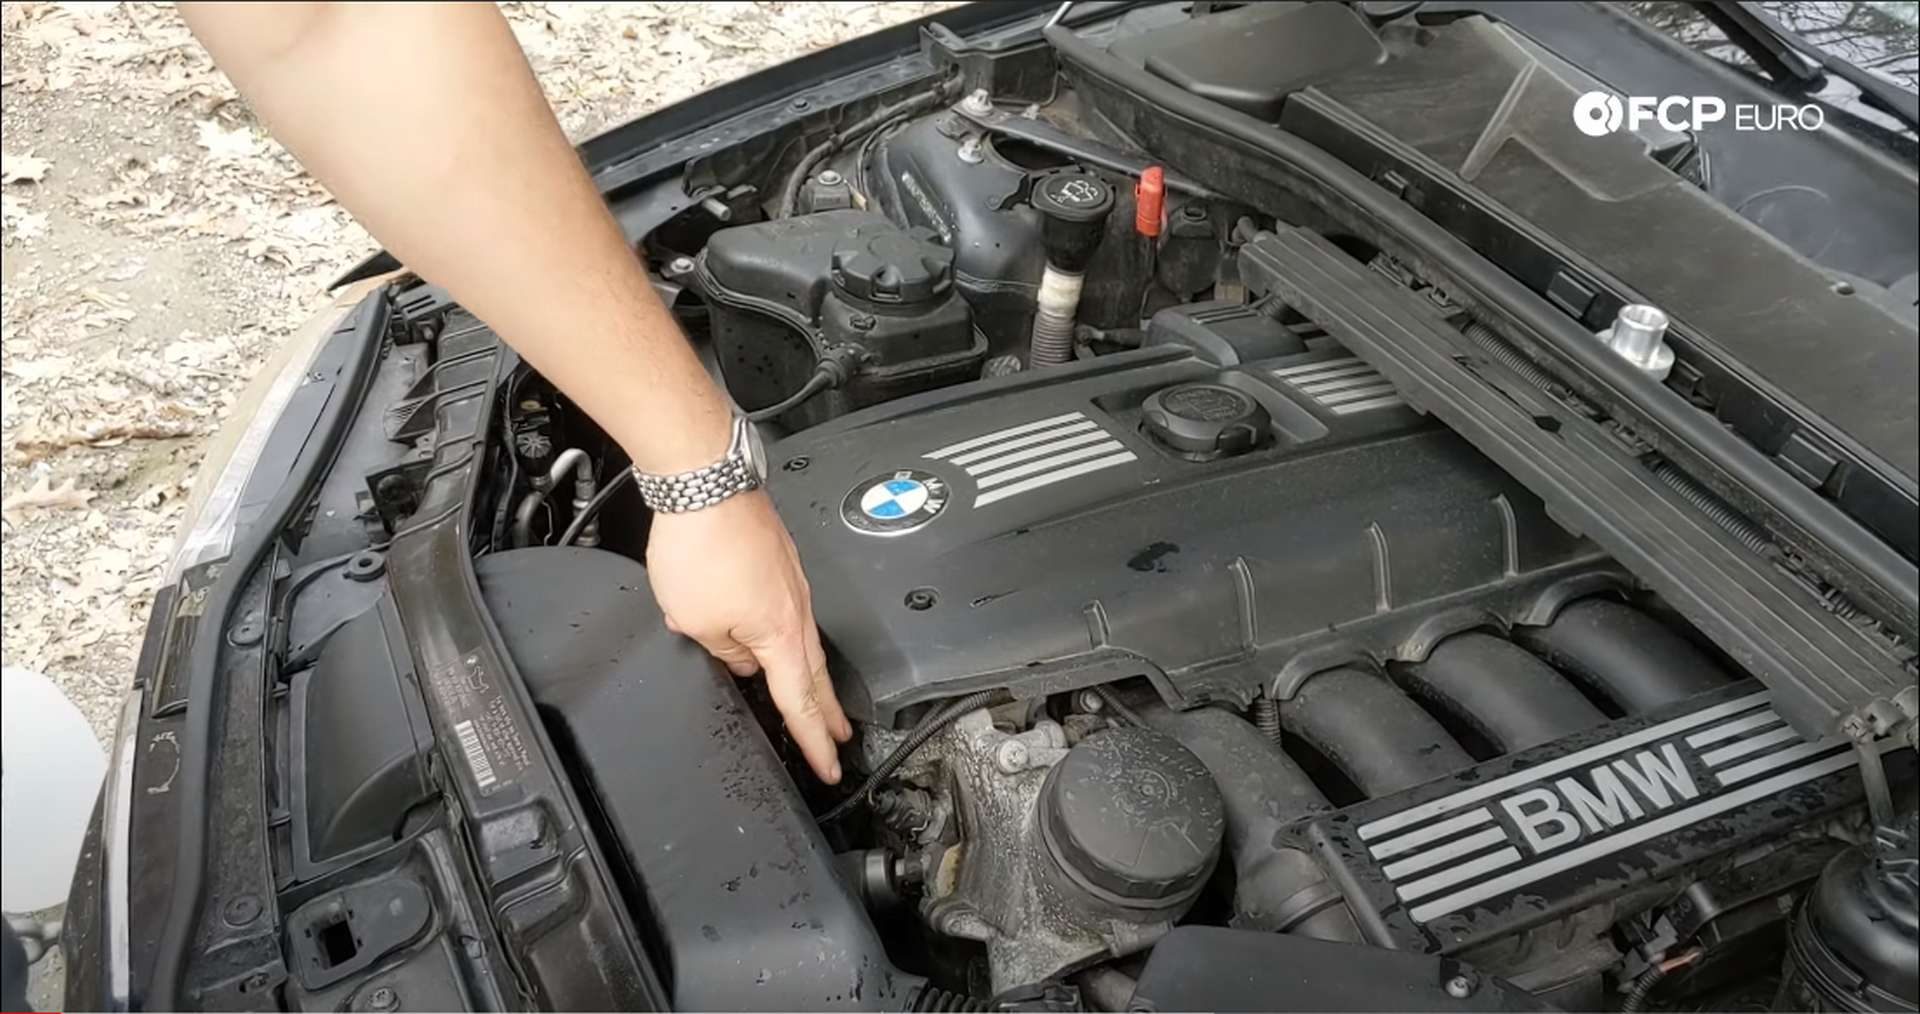 How To Replace The Coolant Inlet Flange On A Bmw X3 X5 328i More N20 N52 N54 N26 N55 Engines